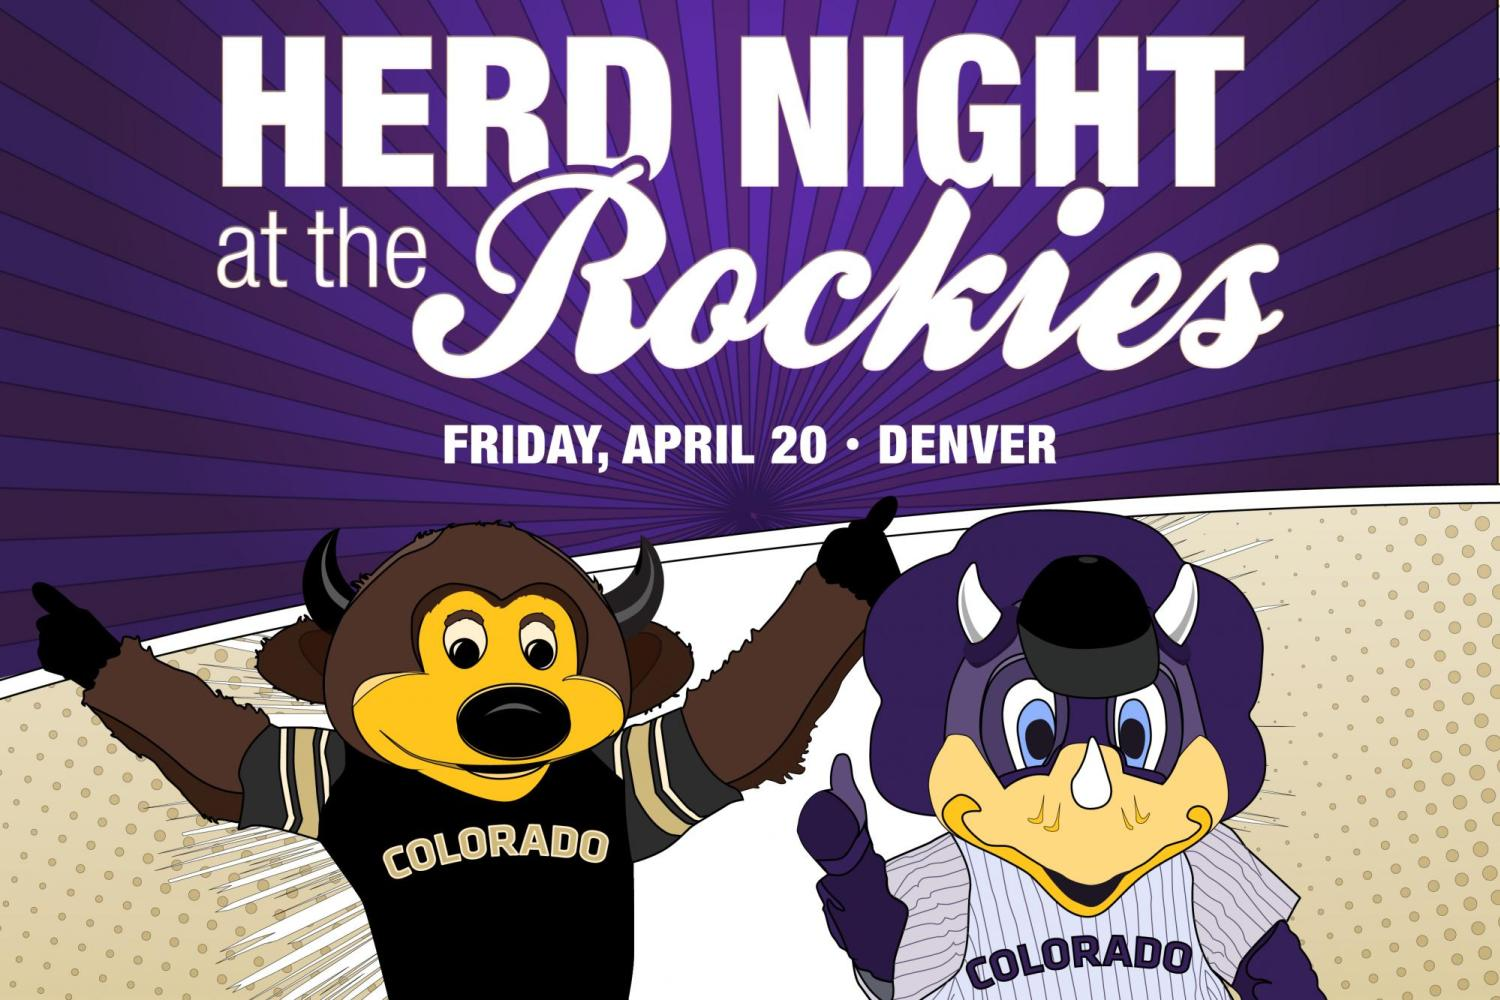 herd night at the rockies